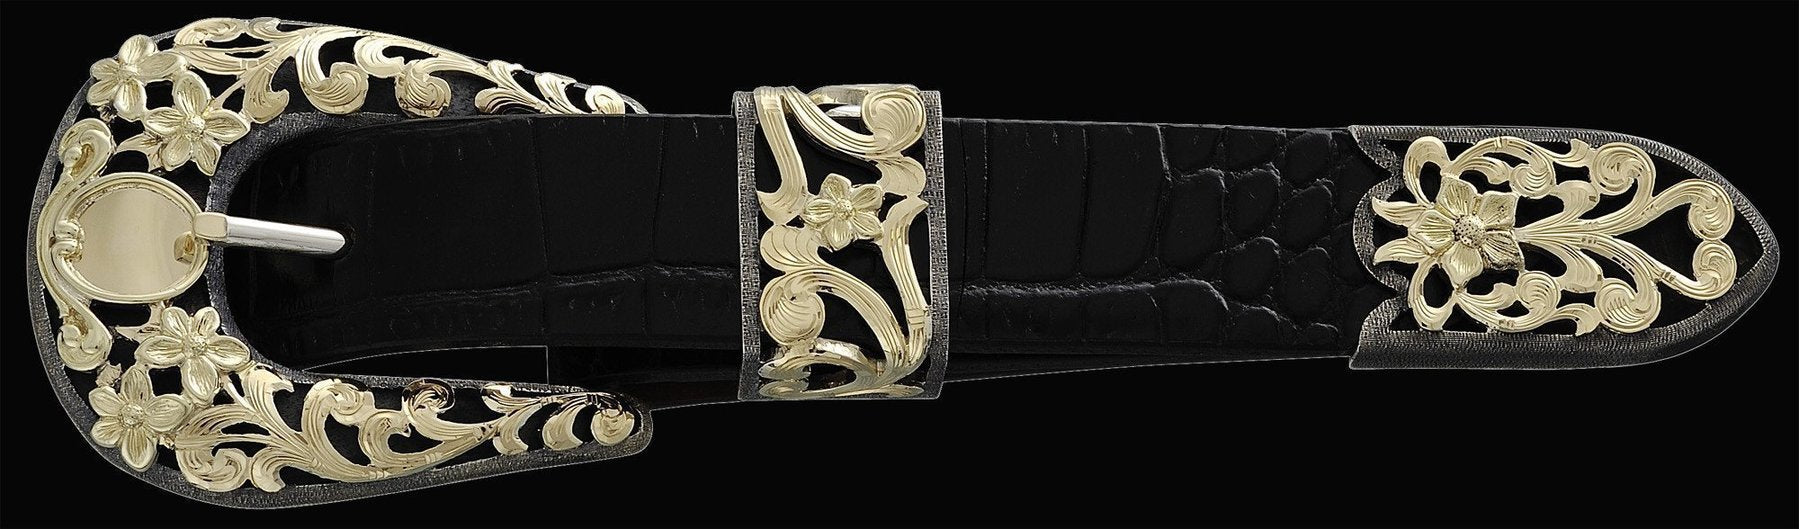 Chet Vogt Gold Fever buckle